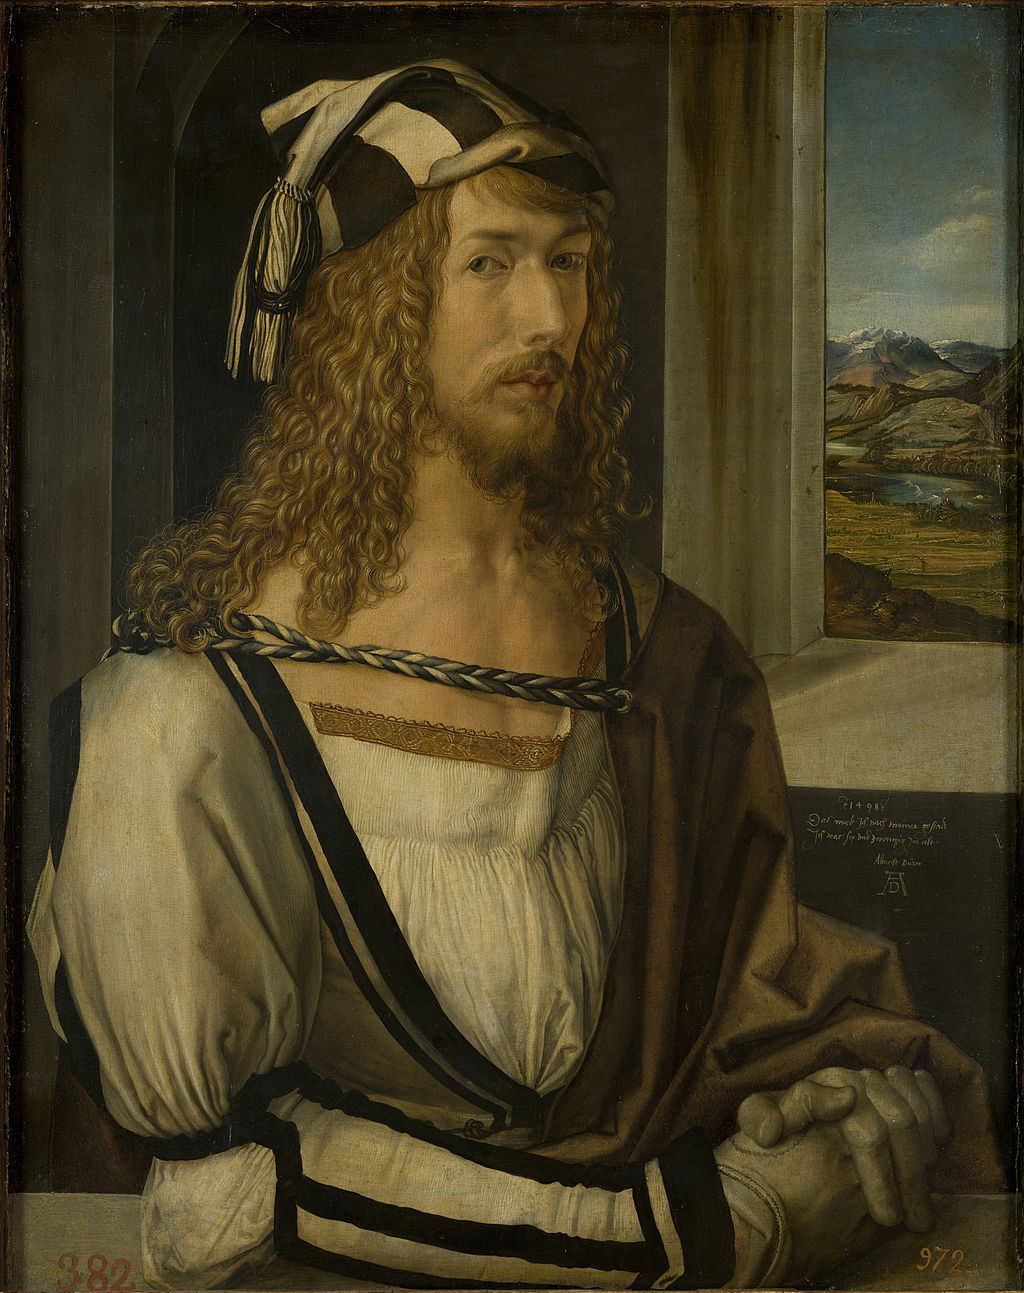 Selbstporträt, by Albrecht Dürer, from Prado in Google Earth